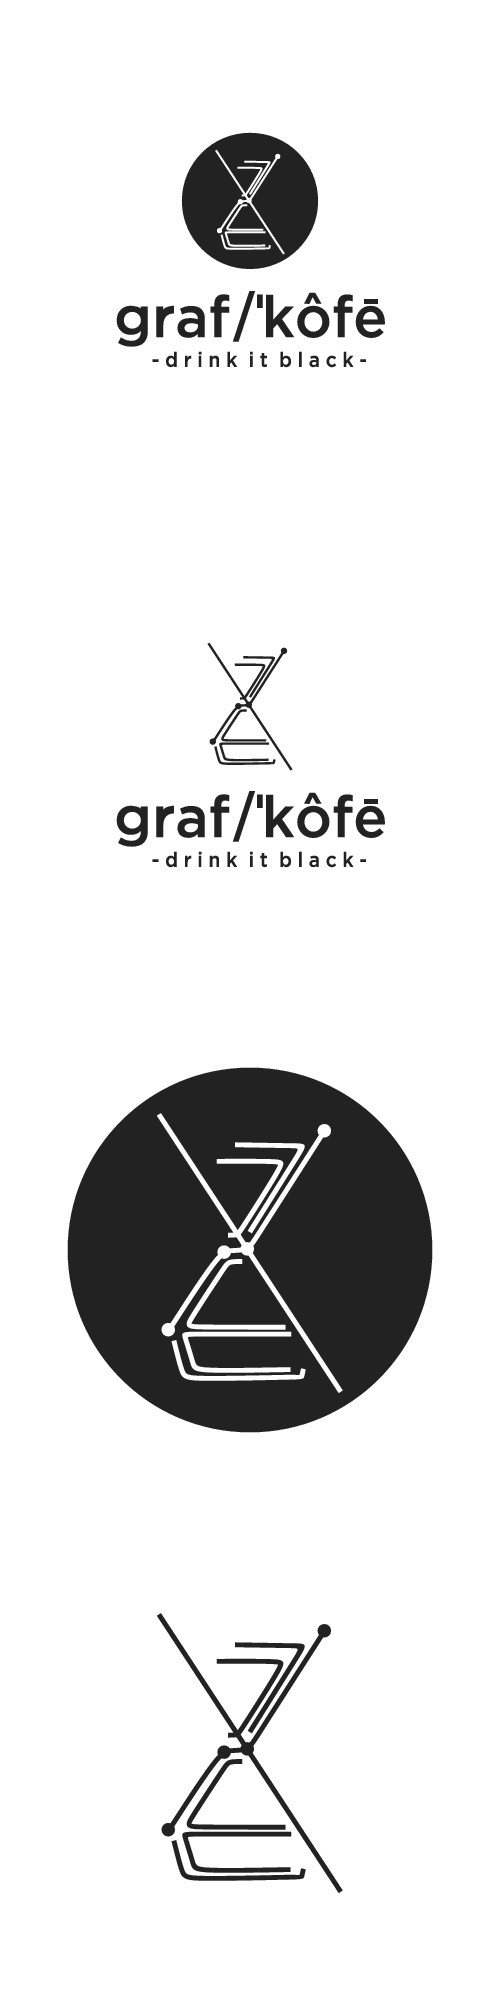 Design a hipster logo that targets millenials/working professionals who love black coffee and bohemian chill vibes